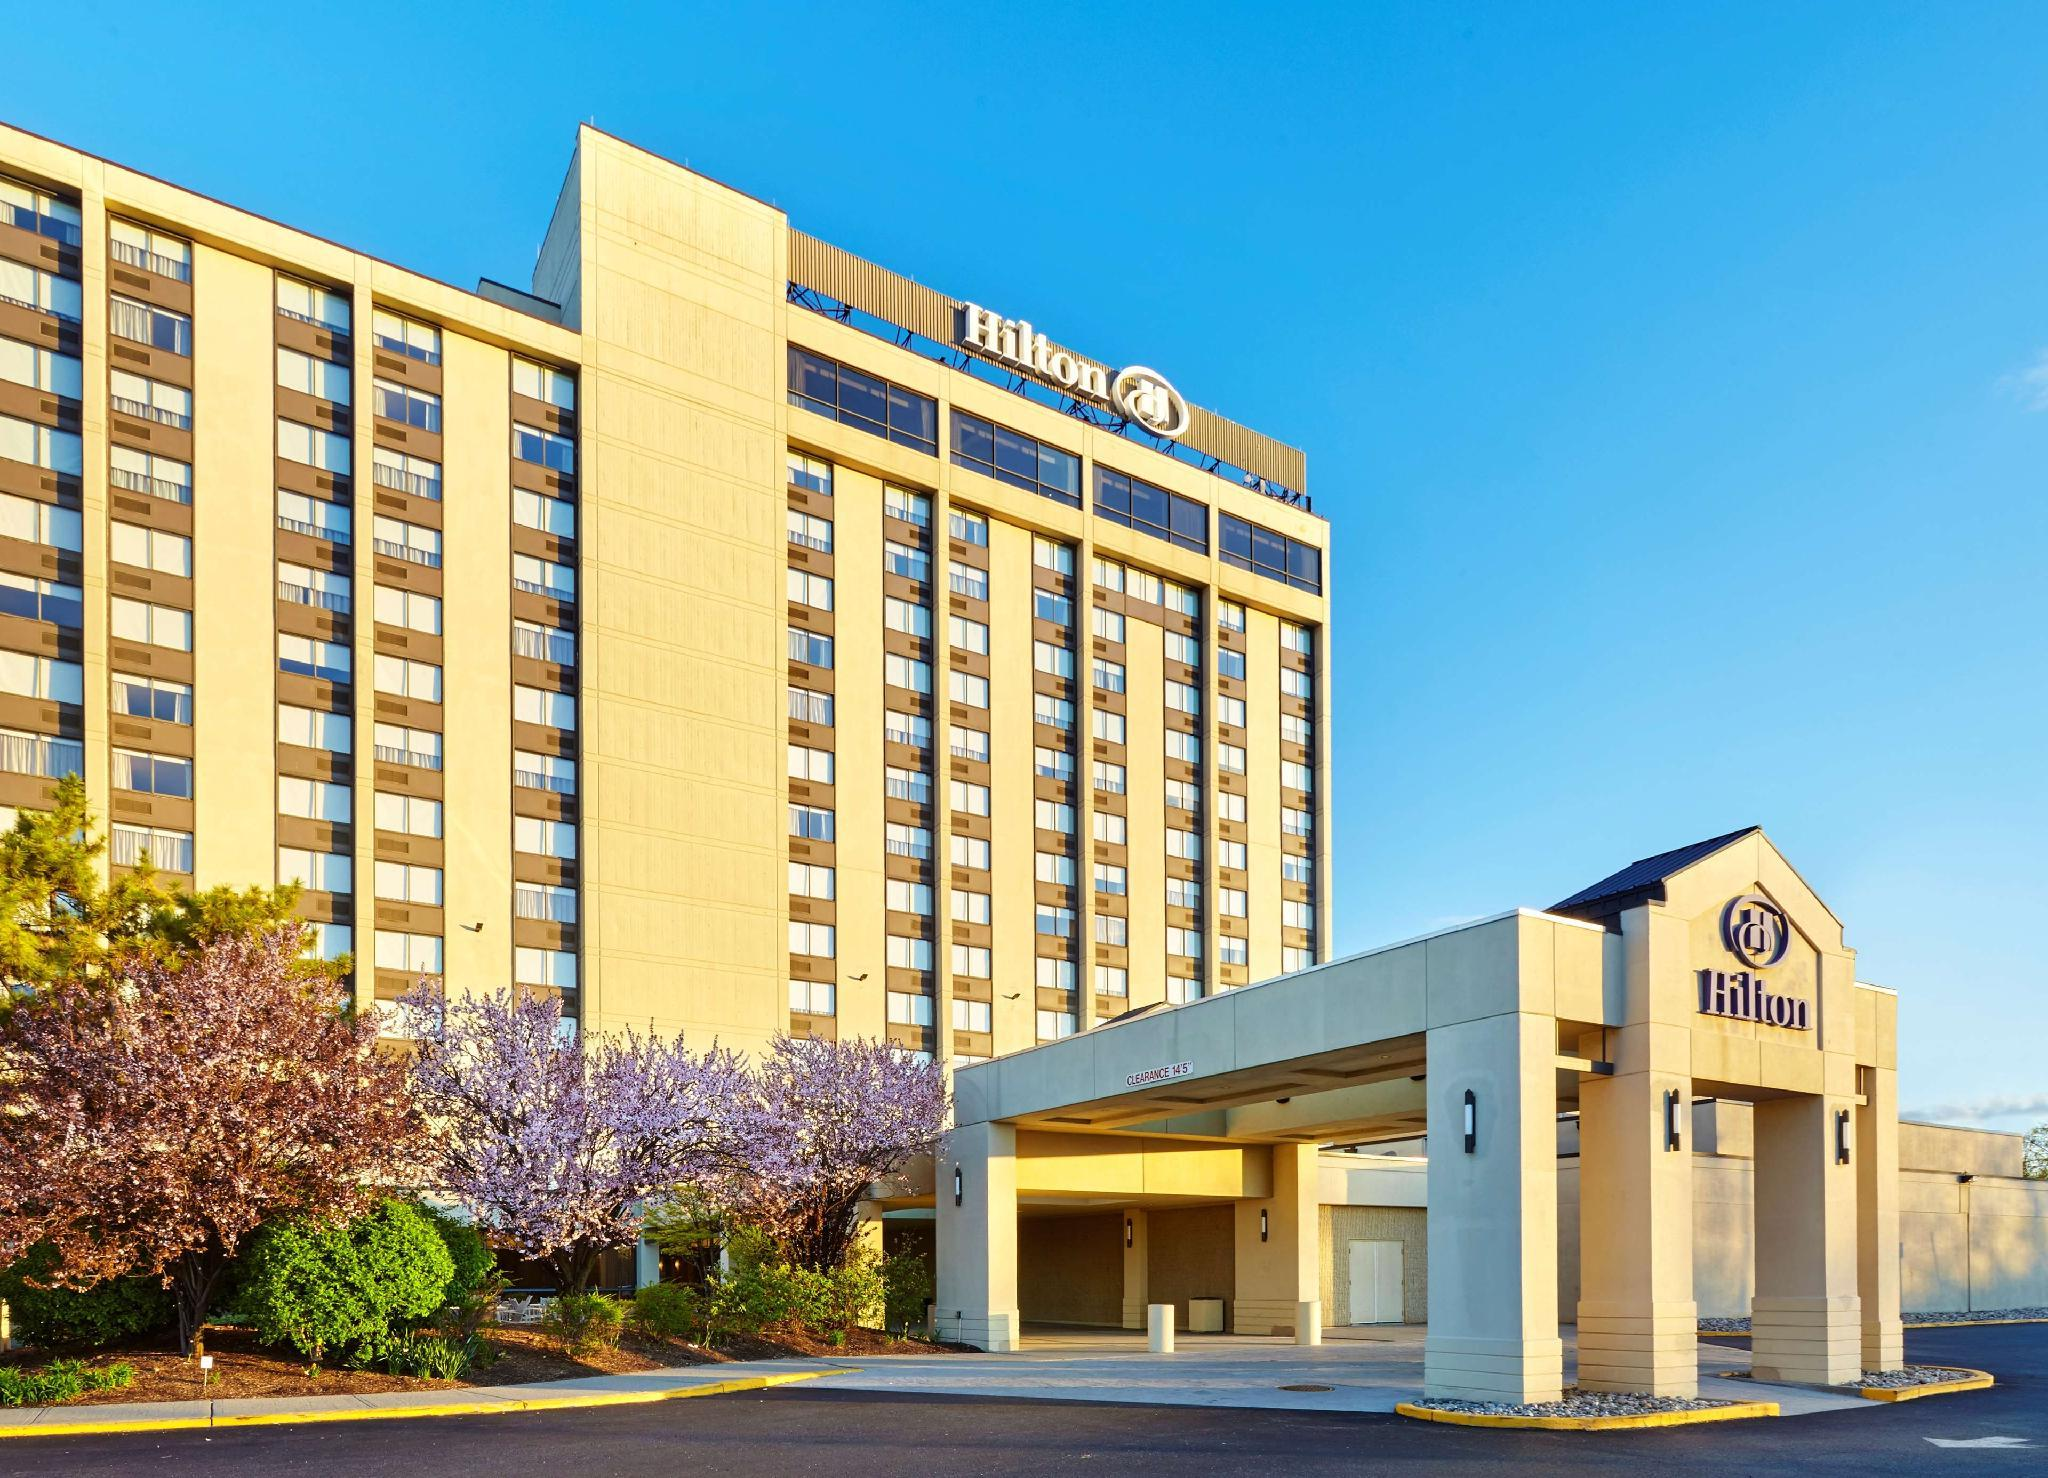 Hilton Hasbrouck Heights/Meadowlands Hotel image